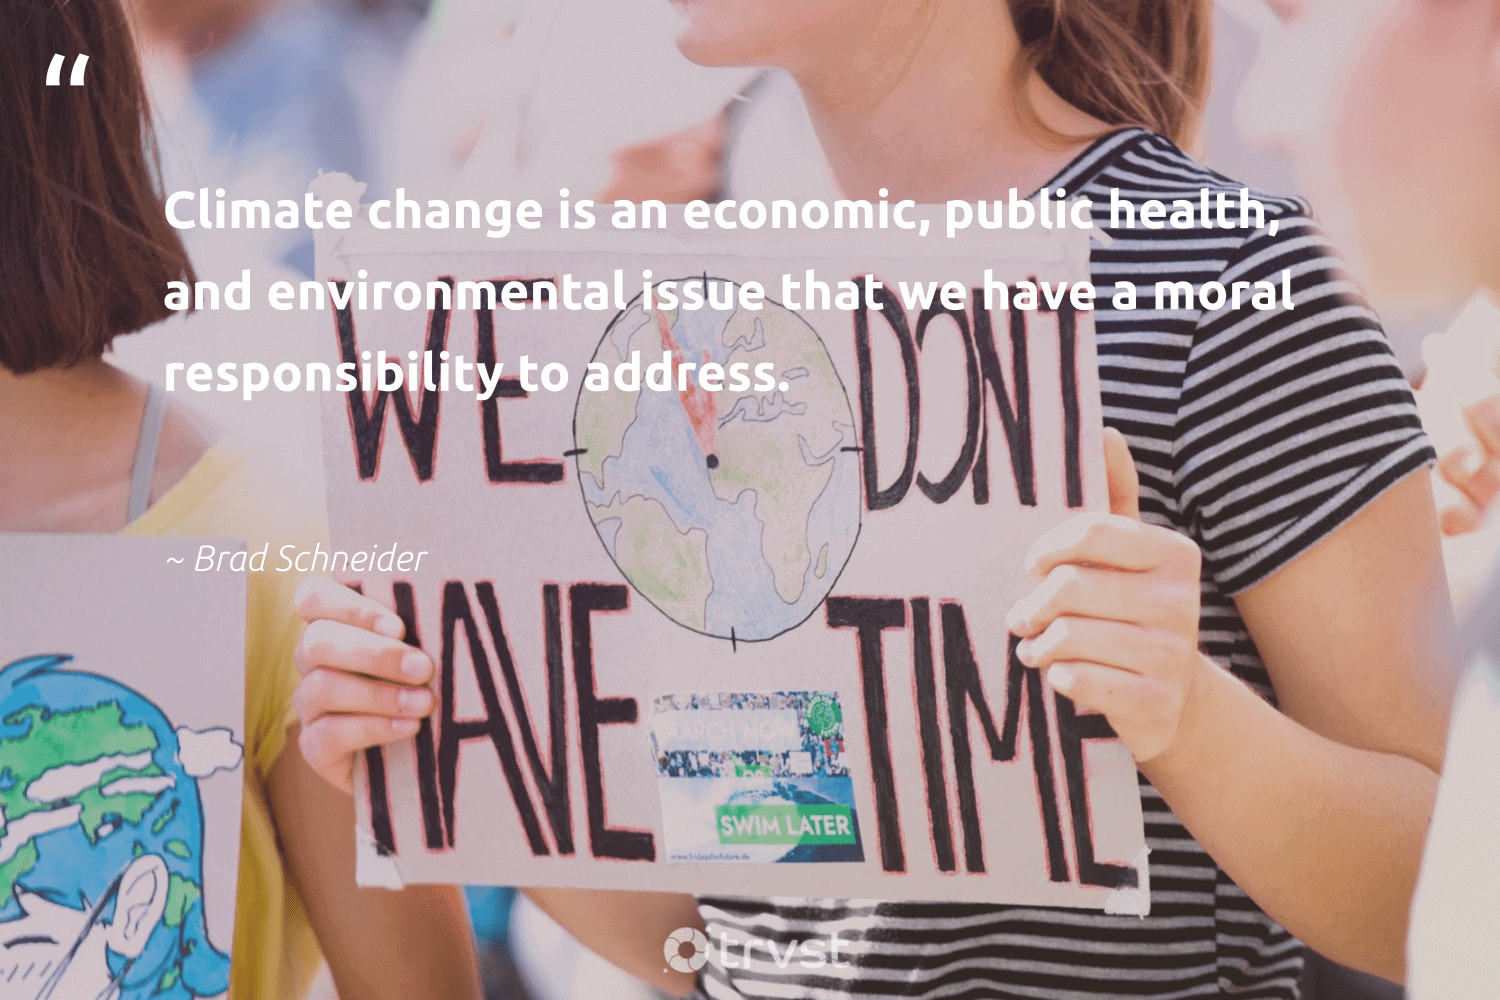 """""""Climate change is an economic, public health, and environmental issue that we have a moral responsibility to address.""""  - Brad Schneider #trvst #quotes #climatechange #environmental #climate #health #cop21 #co2 #climatechangeisreal #climatefight #dogood #globalwarming"""